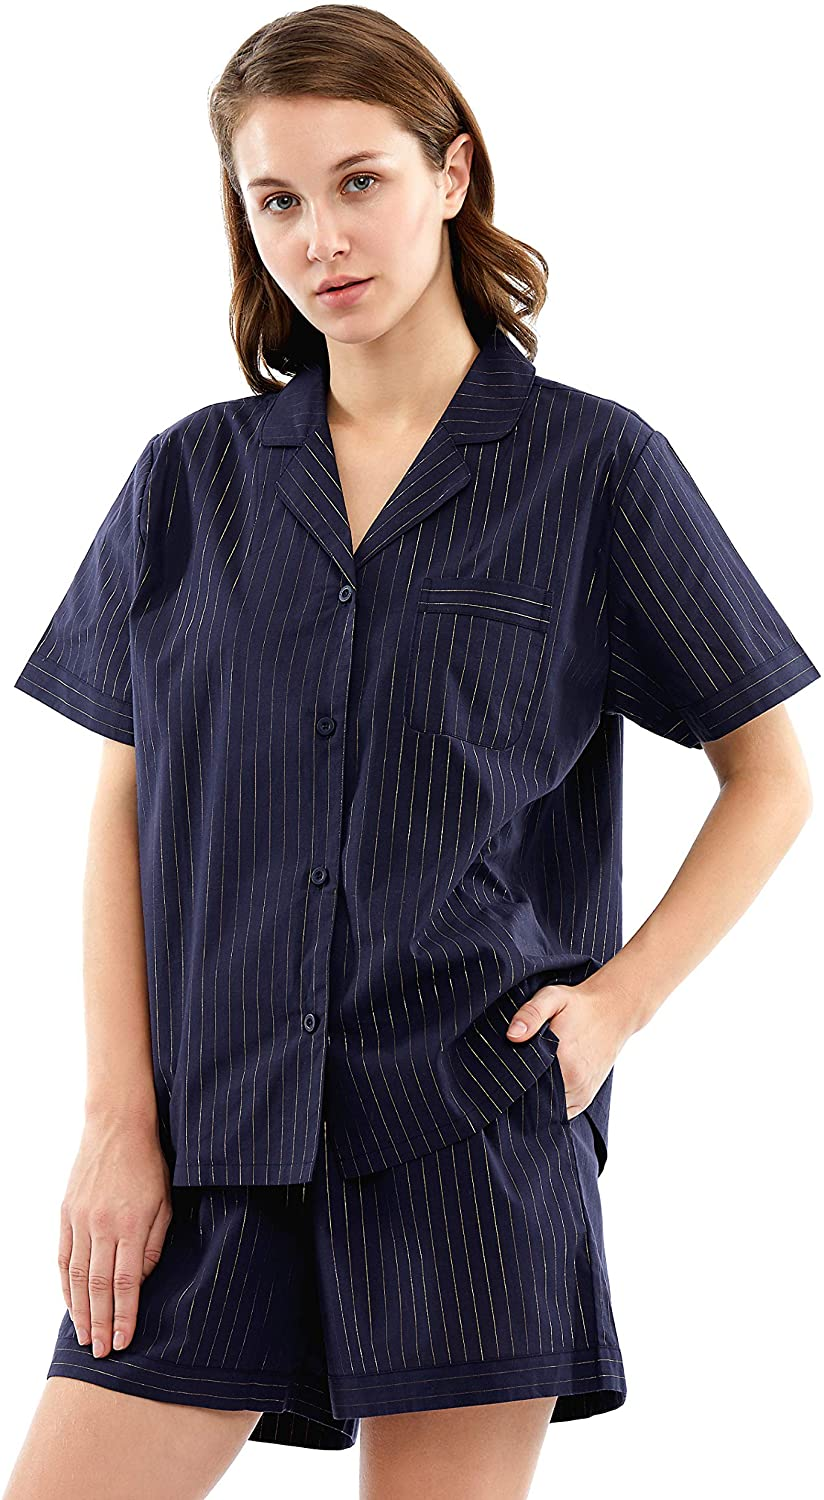 Femofit Womens Luxury Pajama Set Cotton Short Sleeve Sleepwear Set Button Down Loungewear PJs S~XL